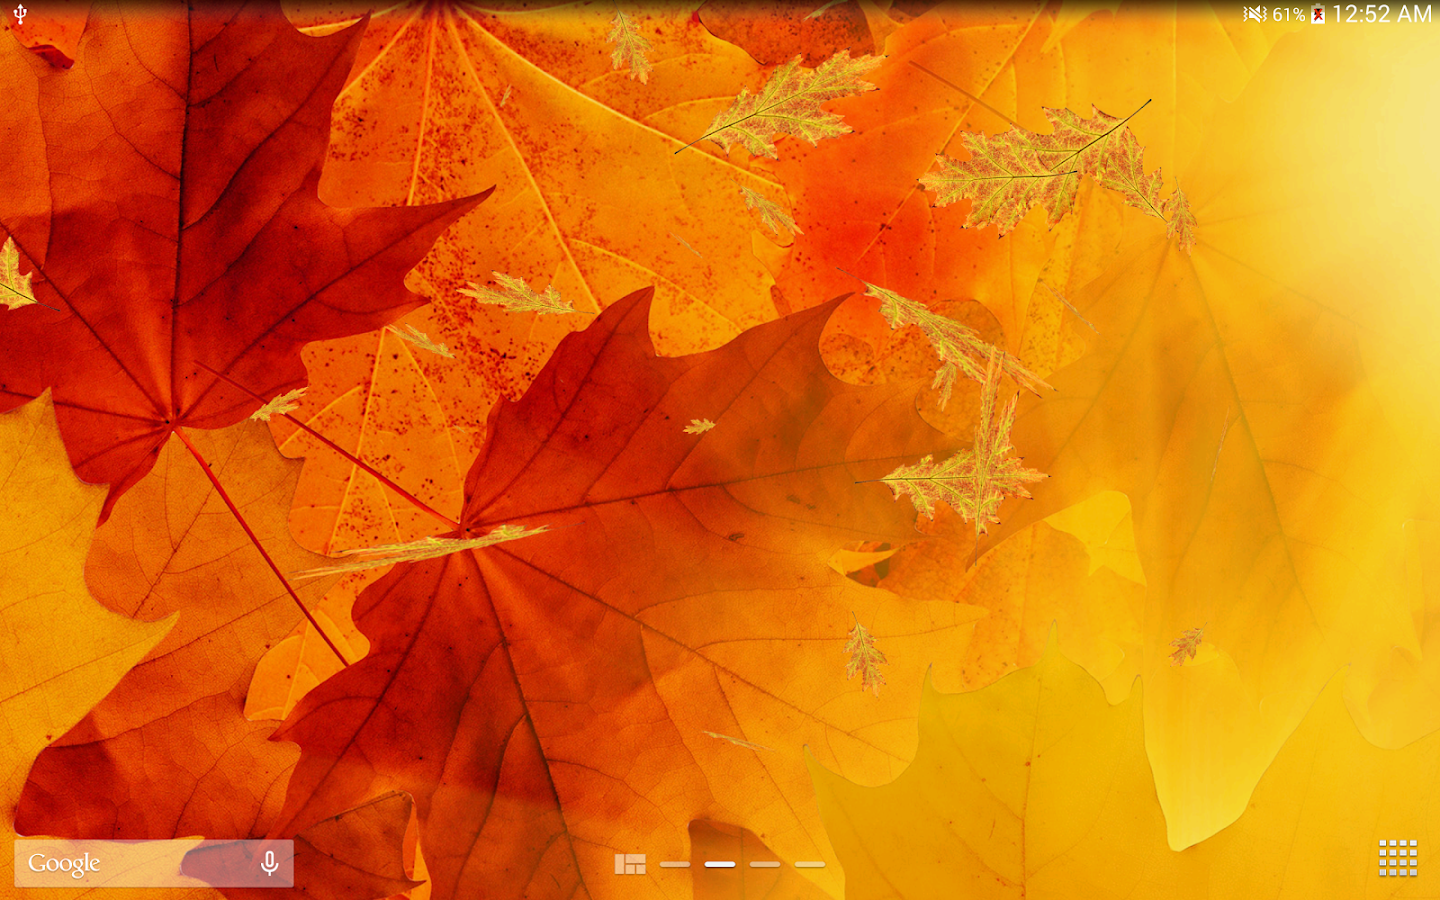 Falling Leaves Live Wallpaper Apps Android 3d Maple Live Wallpaper Pro Hd Android Apps On Google Play